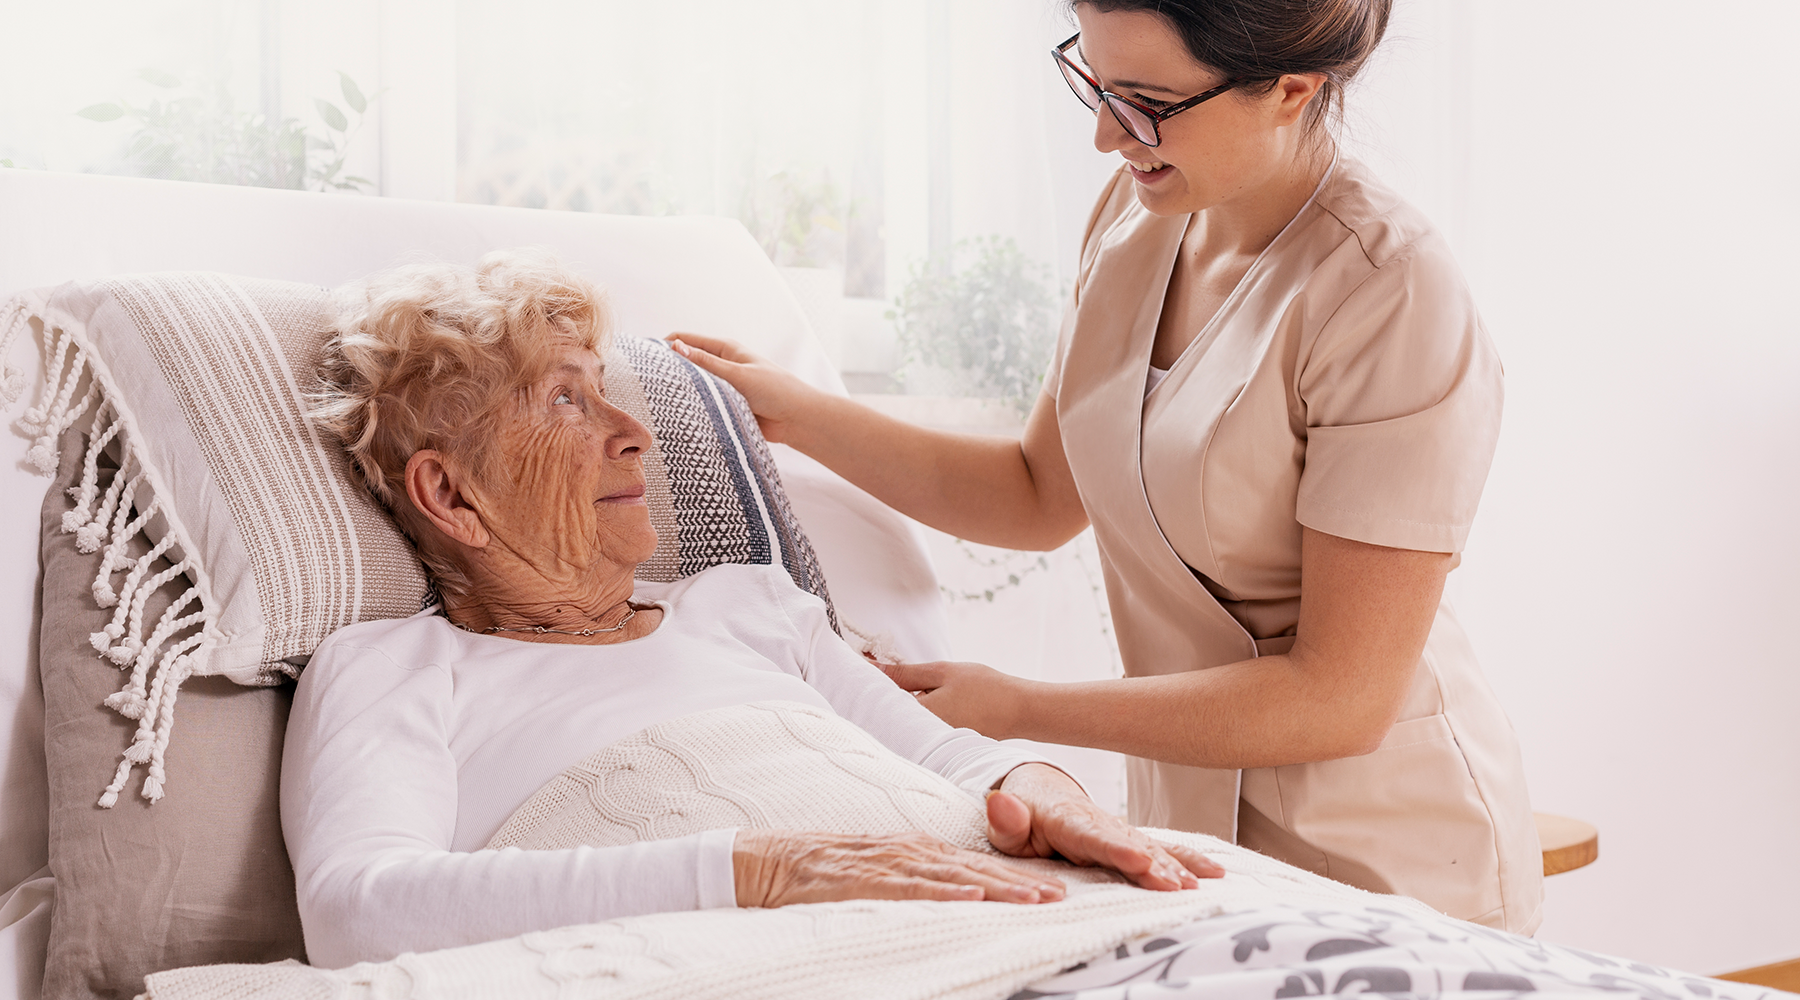 The Home Hospital: What Is It and How Will It Affect Future Care?